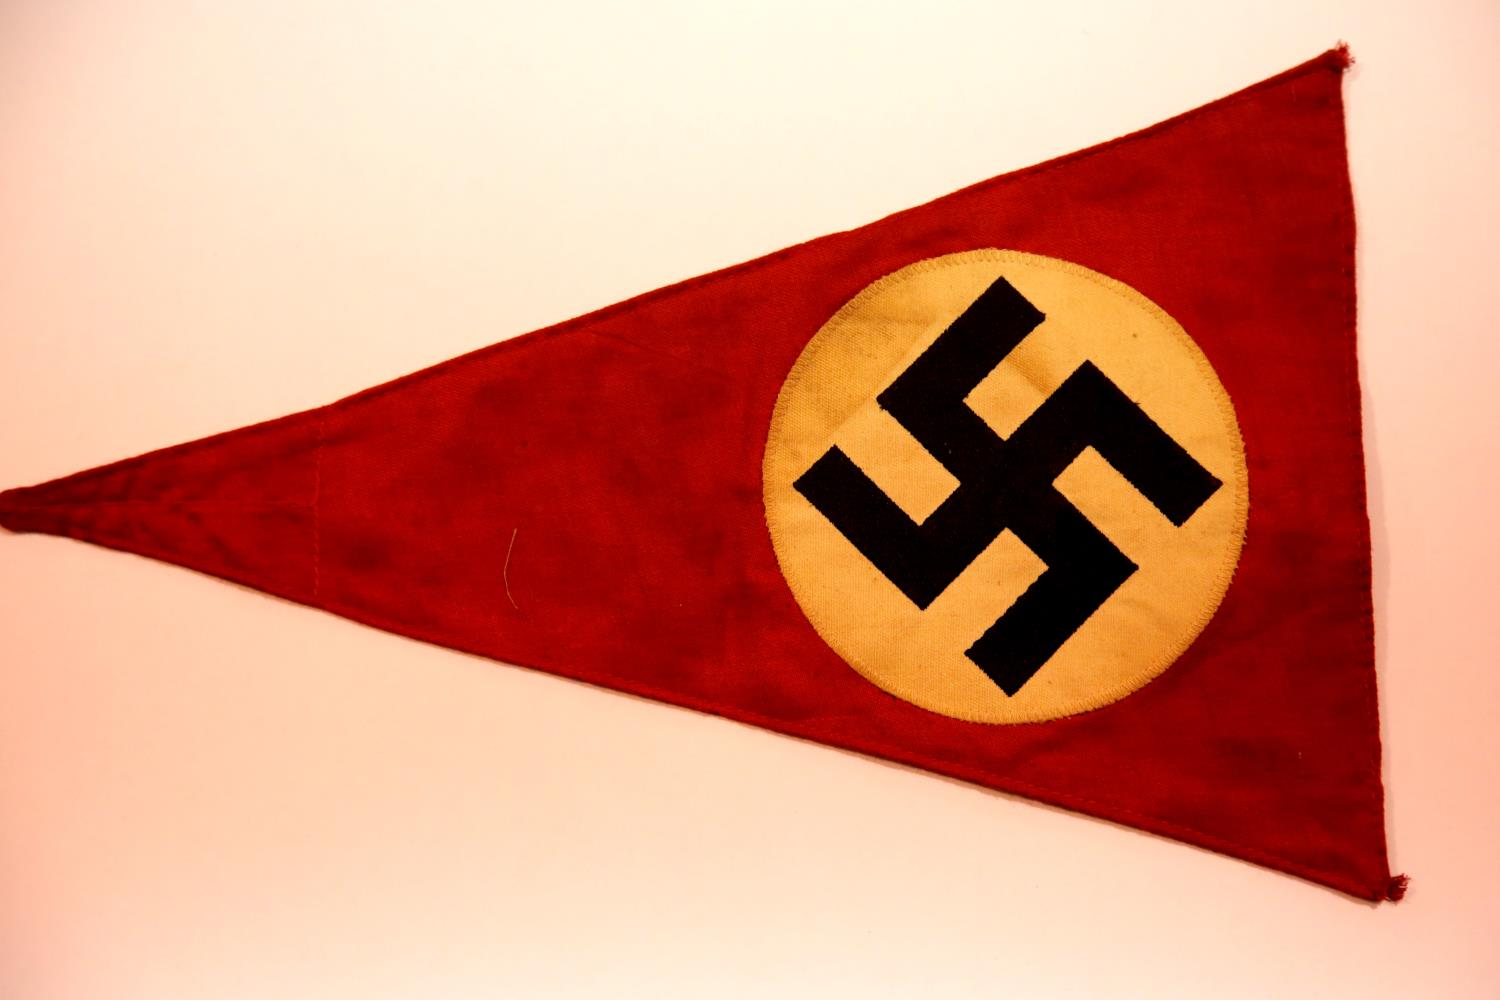 Lot 3022 - German WWII type pennant, L: 36 cm. P&P Group 1 (£14+VAT for the first lot and £1+VAT for subsequent